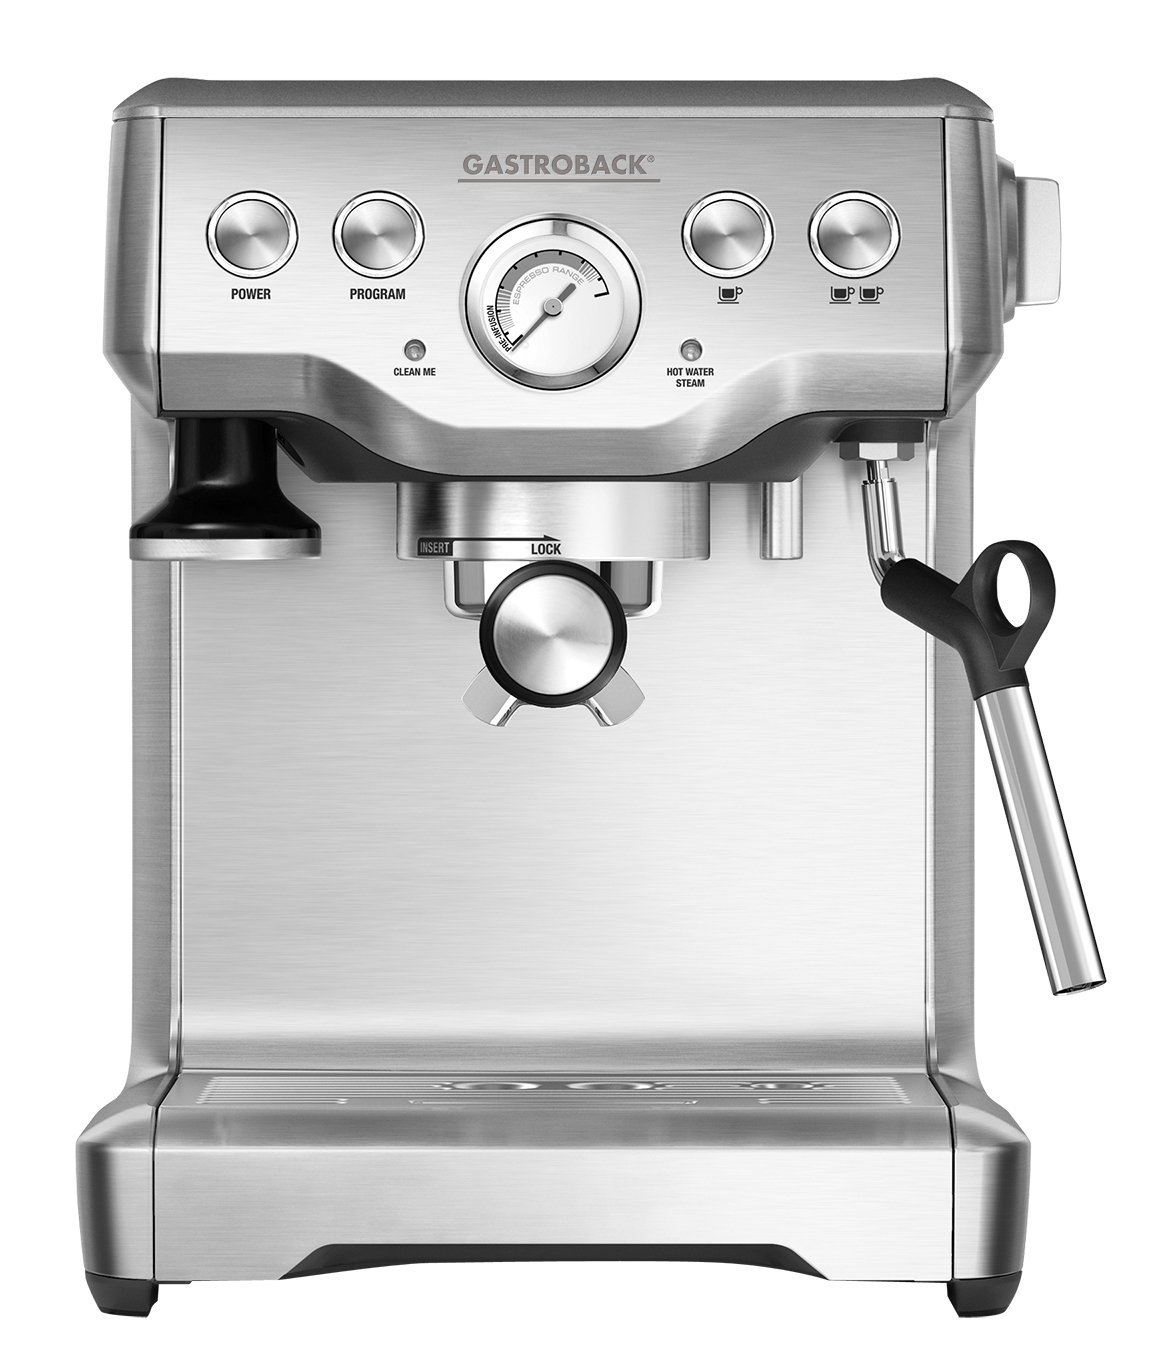 Gastroback 42611 Design Espresso Advanced Plus